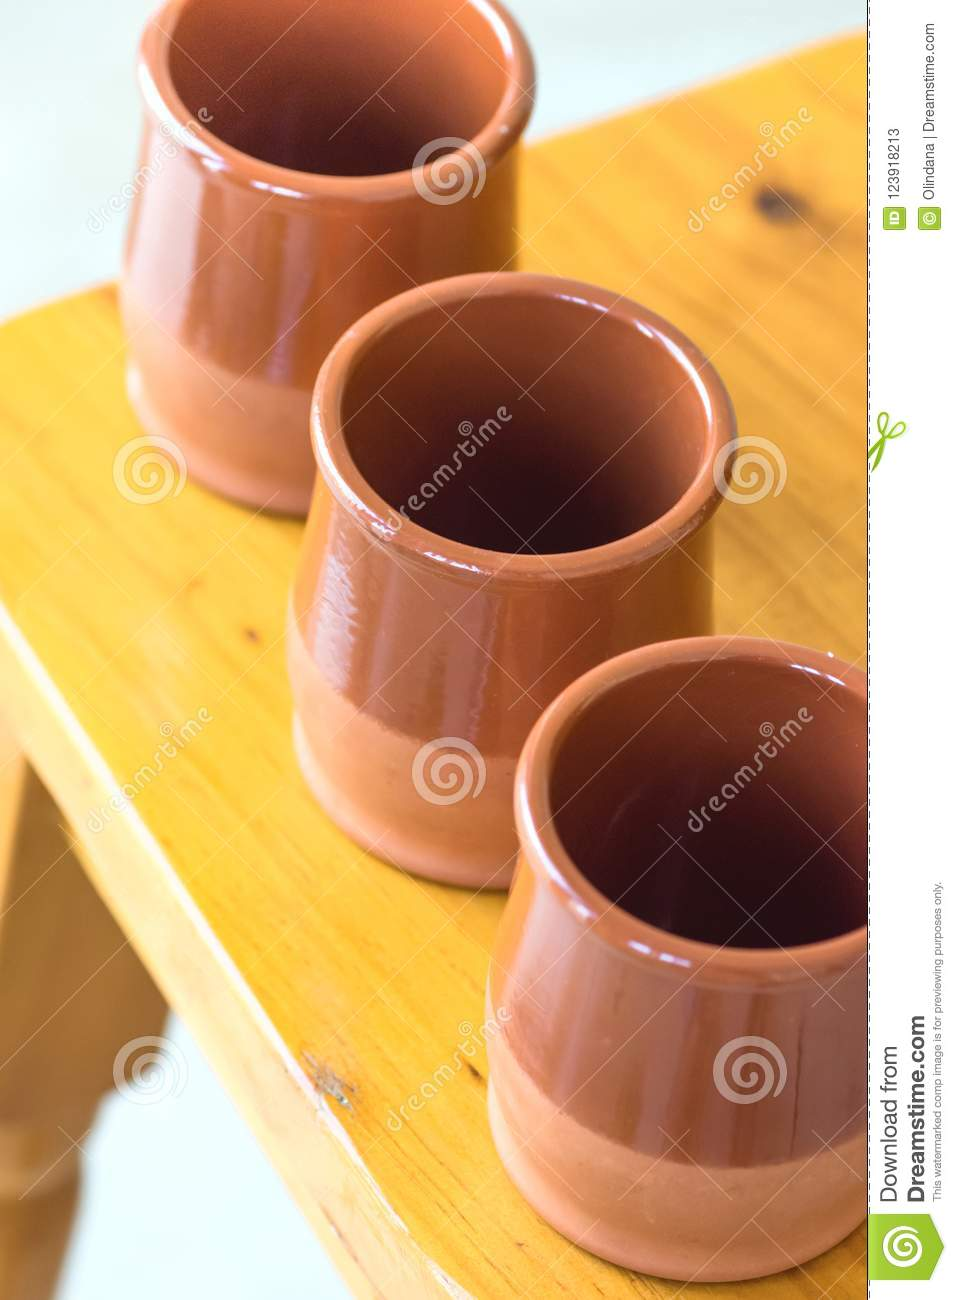 Set Of Traditional Spanish Red Clay Glazed Earthenware Cups On Wooden Table Mediterranean Kitchen Interior Decoration Style Stock Image Image Of Ceramics Earthenware 123918213